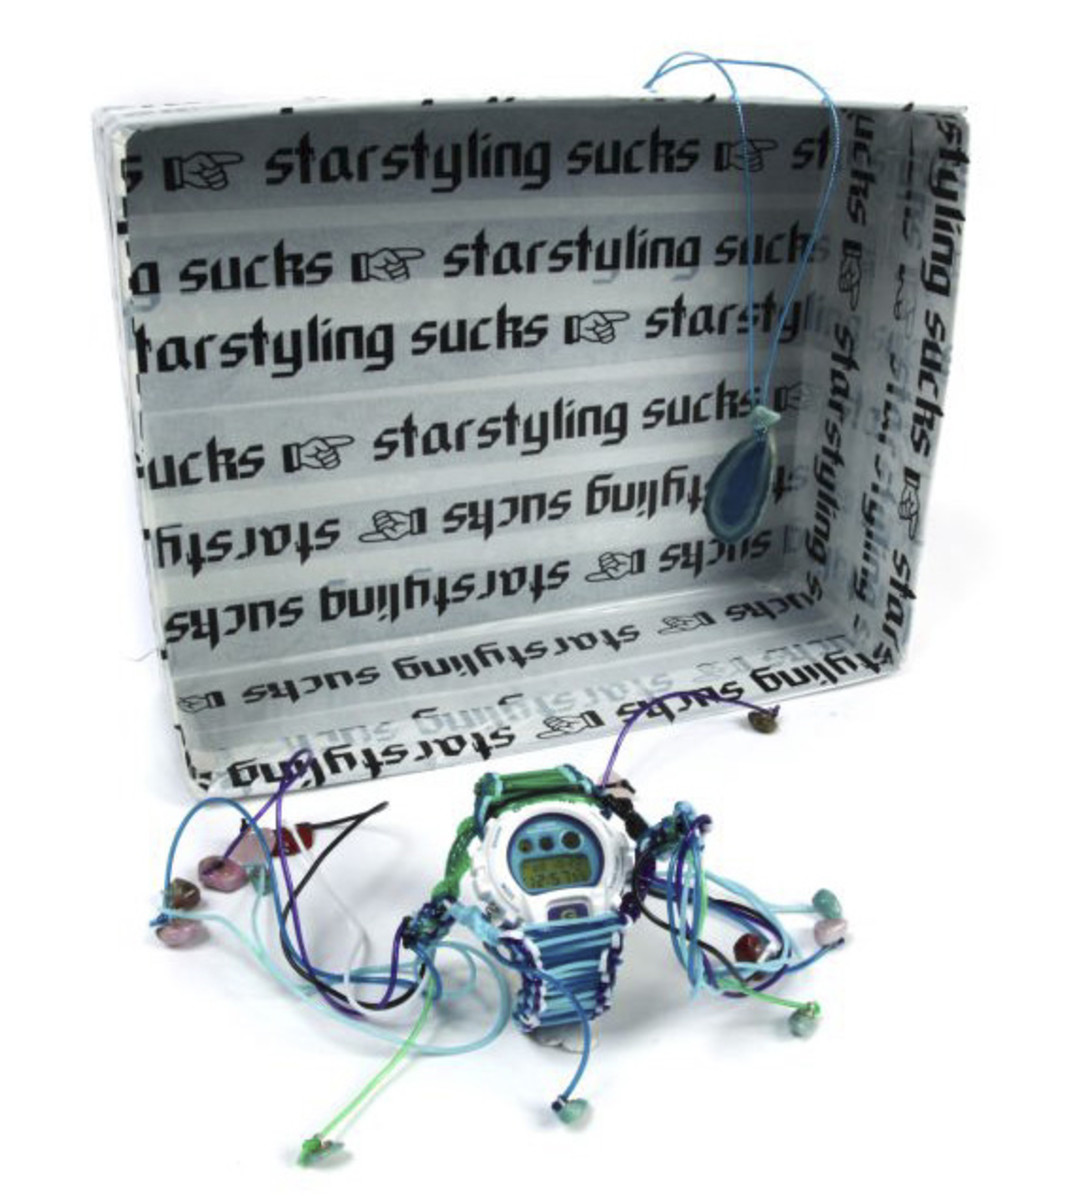 casio-starstlying-g-shock-05